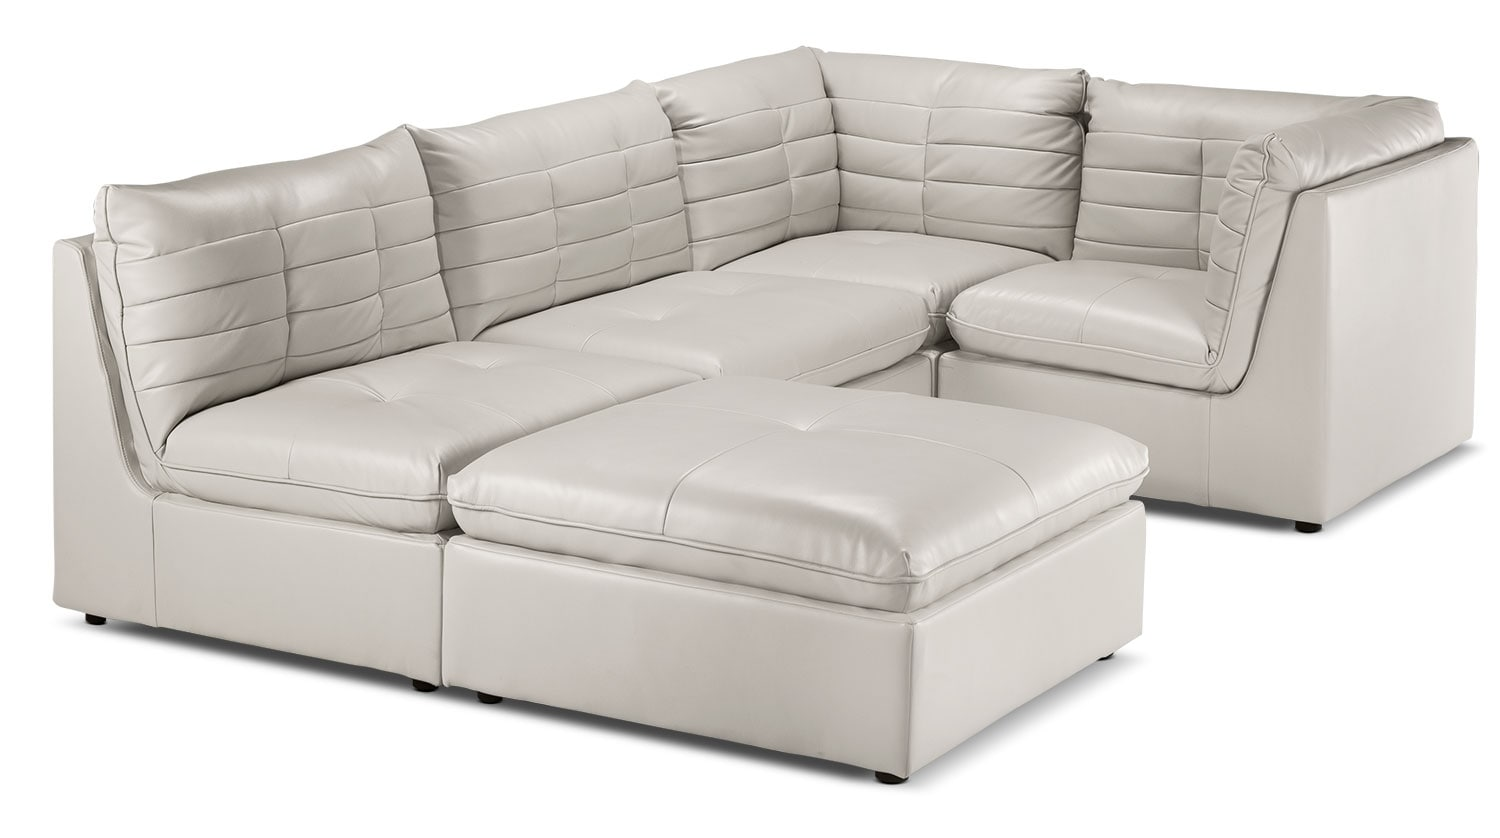 Living Room Furniture - Cortina 5 Pc. Sectional